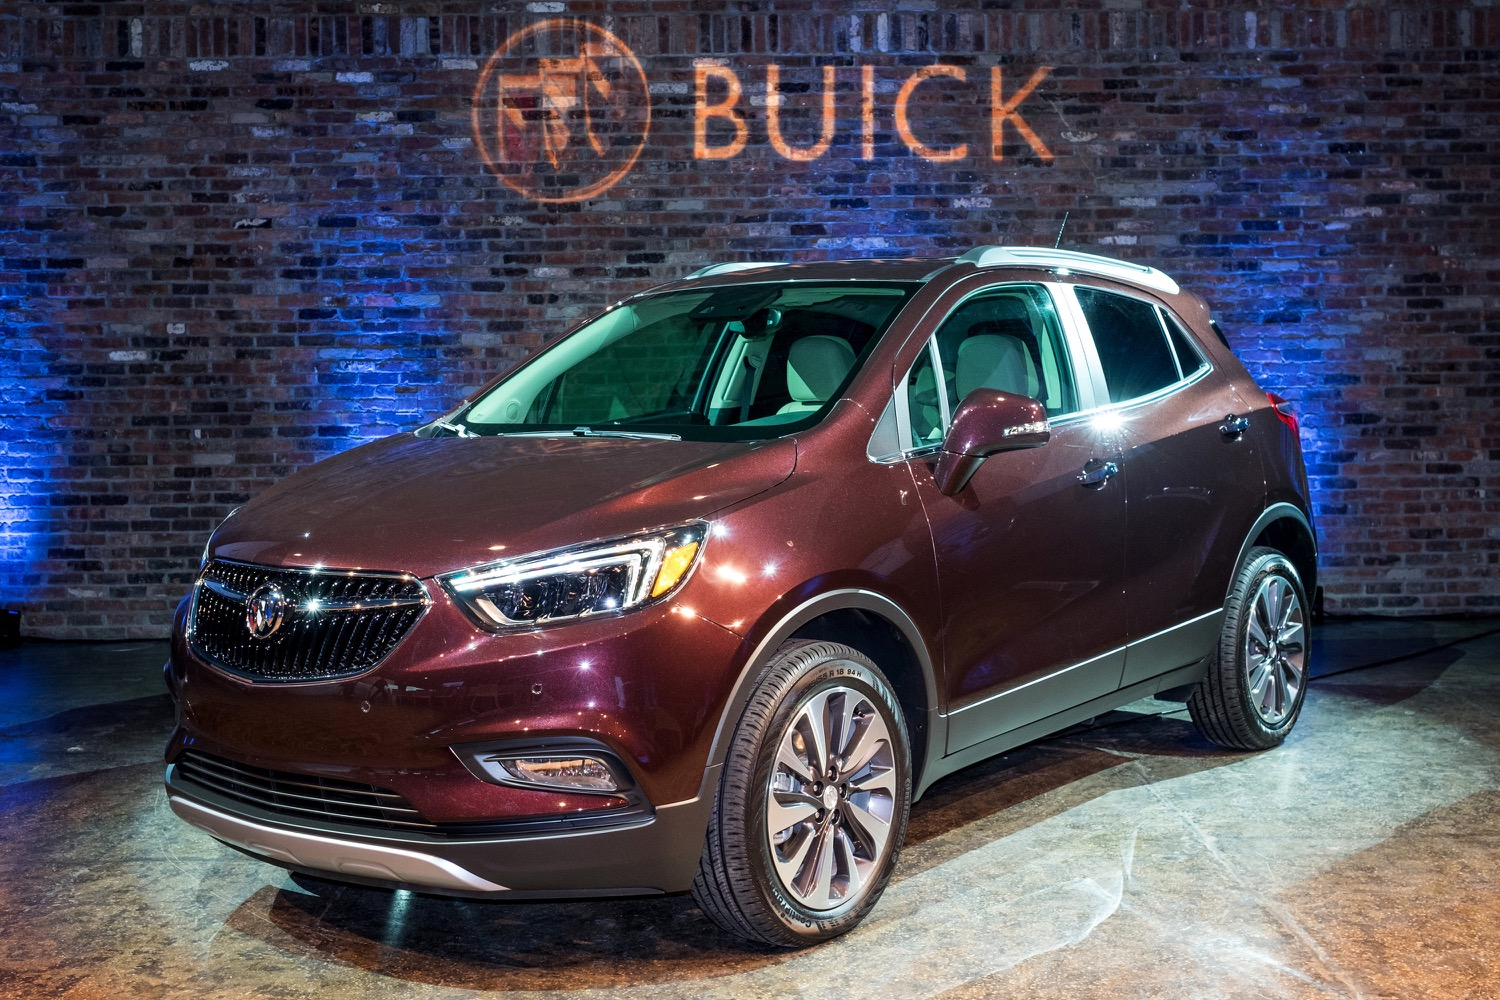 Buick Encore Discount Totals $4,500 In April 2020 | Gm Authority 2022 Buick Encore Engine Options, Features, Incentives